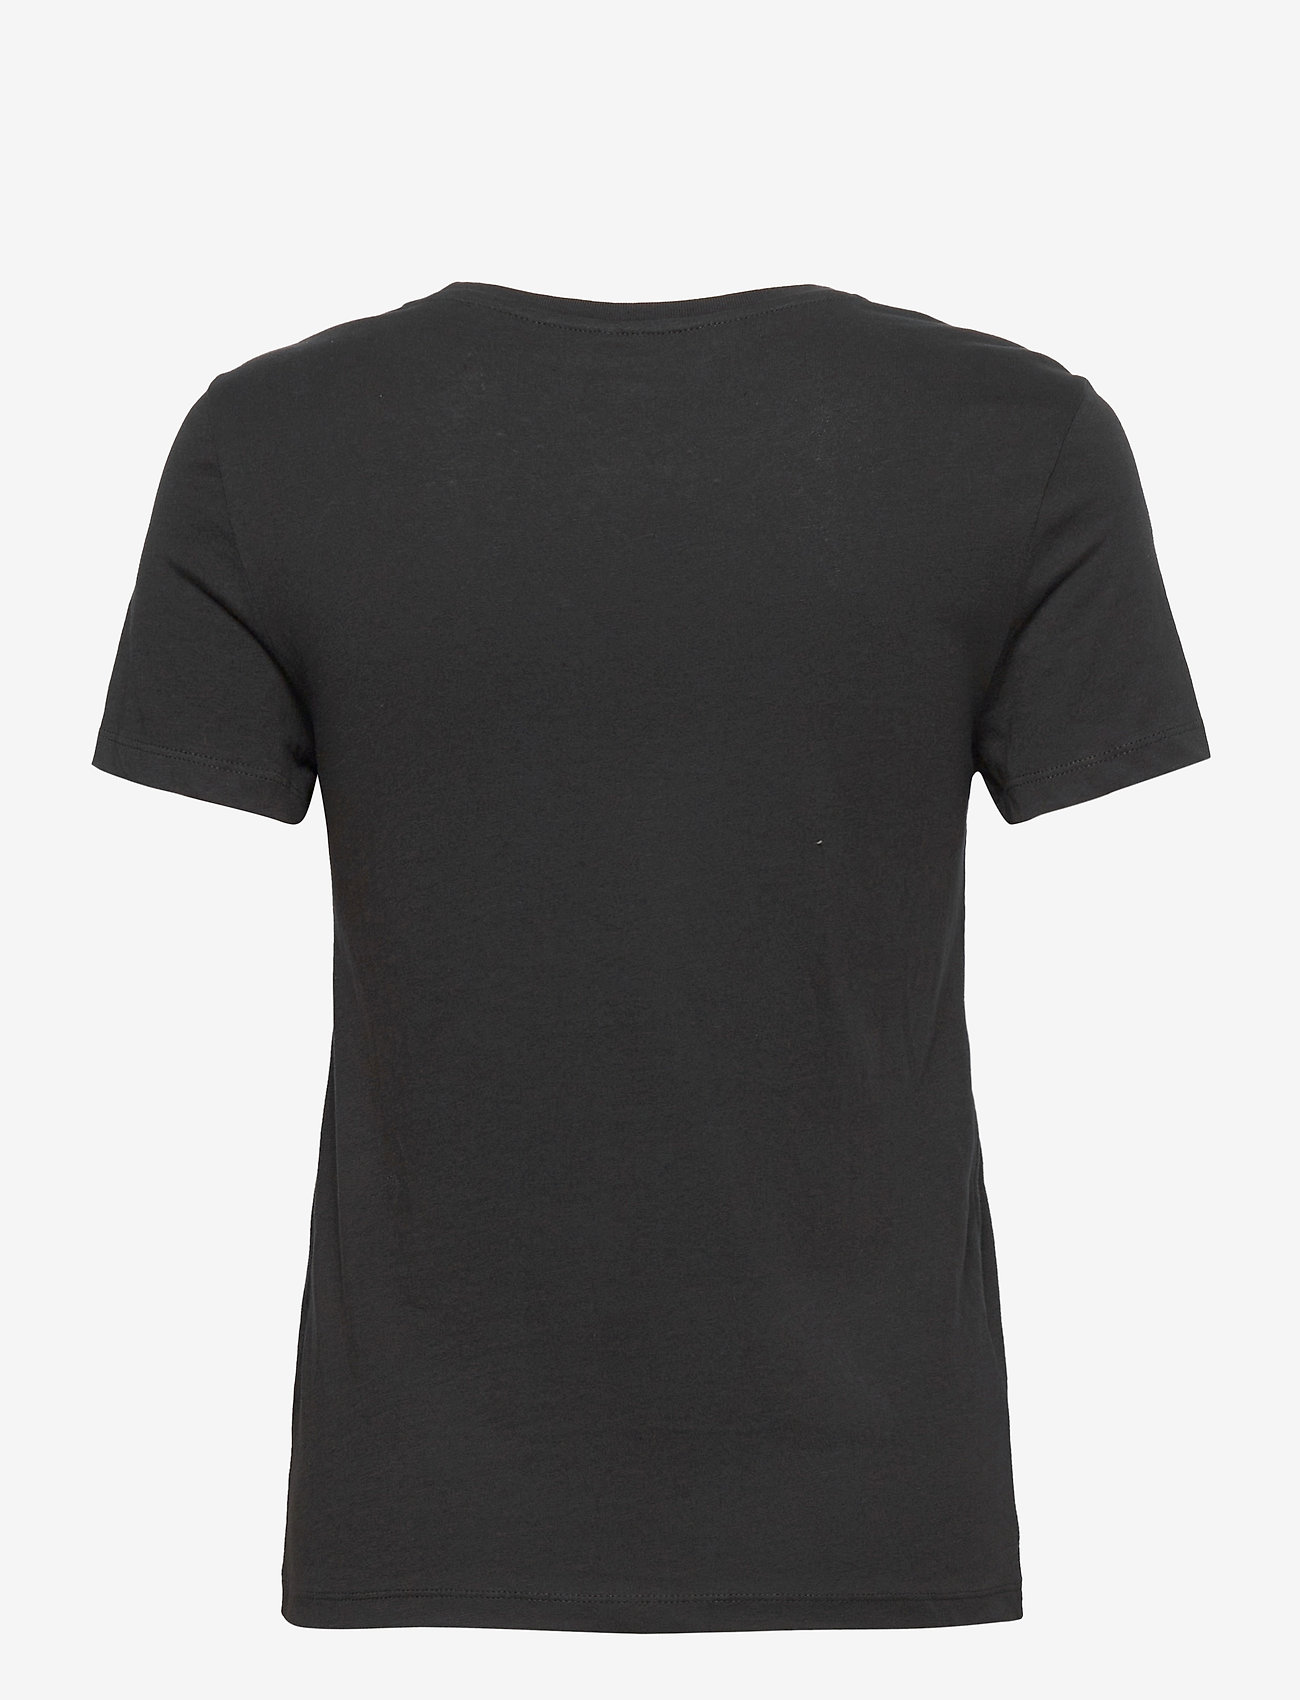 ONLY - ONLYRSA CHRISTMAS REG S/S TOP JRS - t-shirts - black - 1